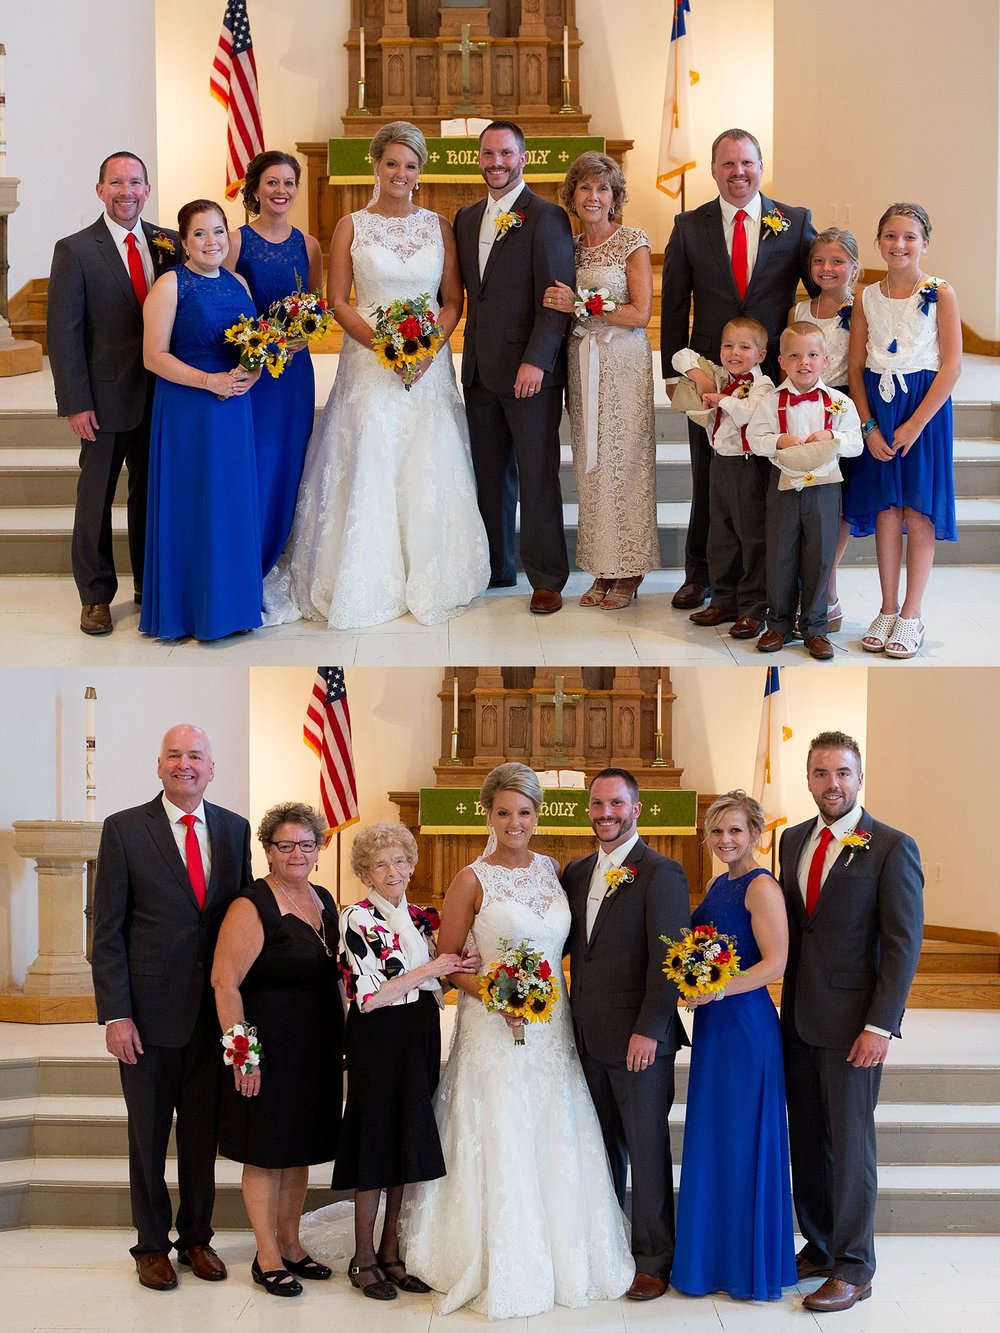 5Alice Hq Photography | Emilie + Tyler Southern MN Wedding.jpg